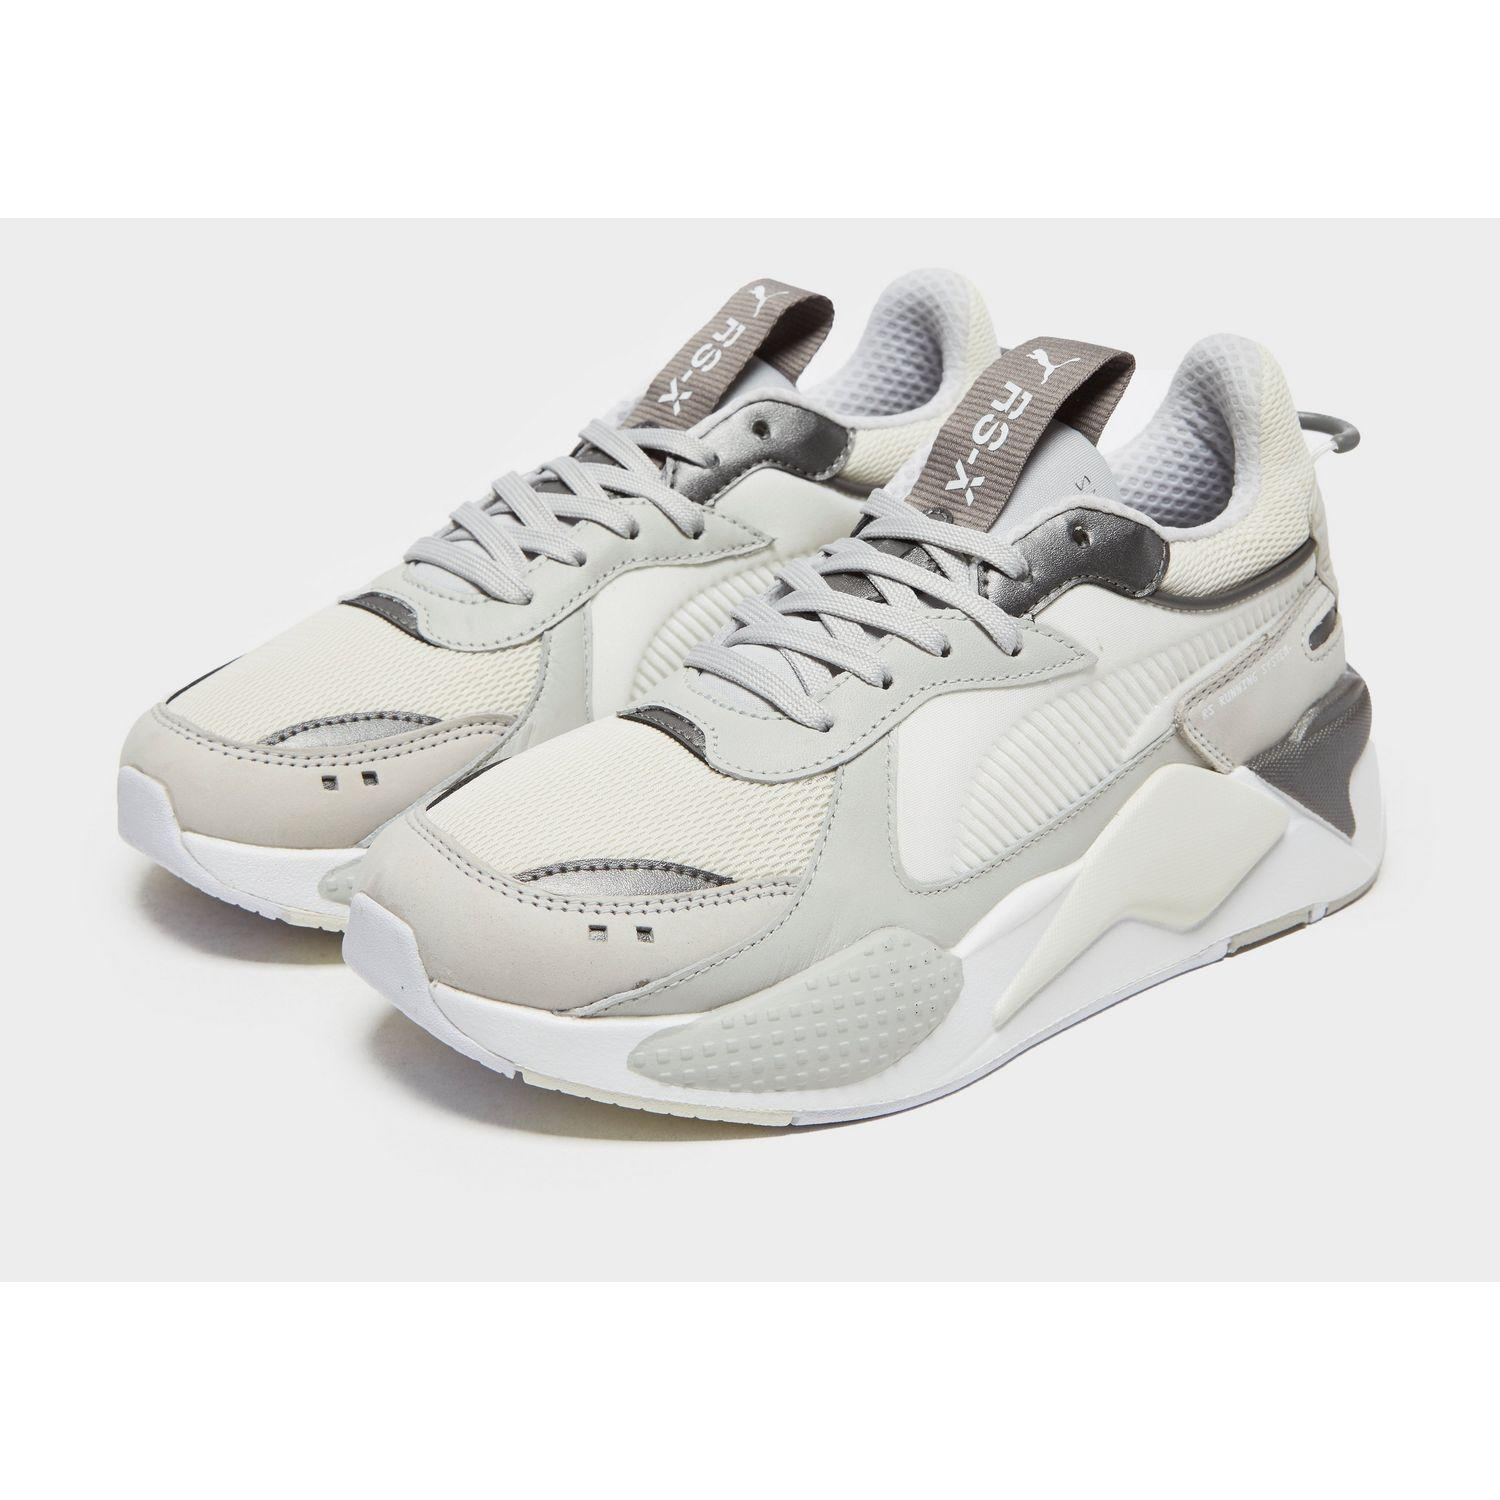 PUMA Leather Rs X Trophy in White/Cream